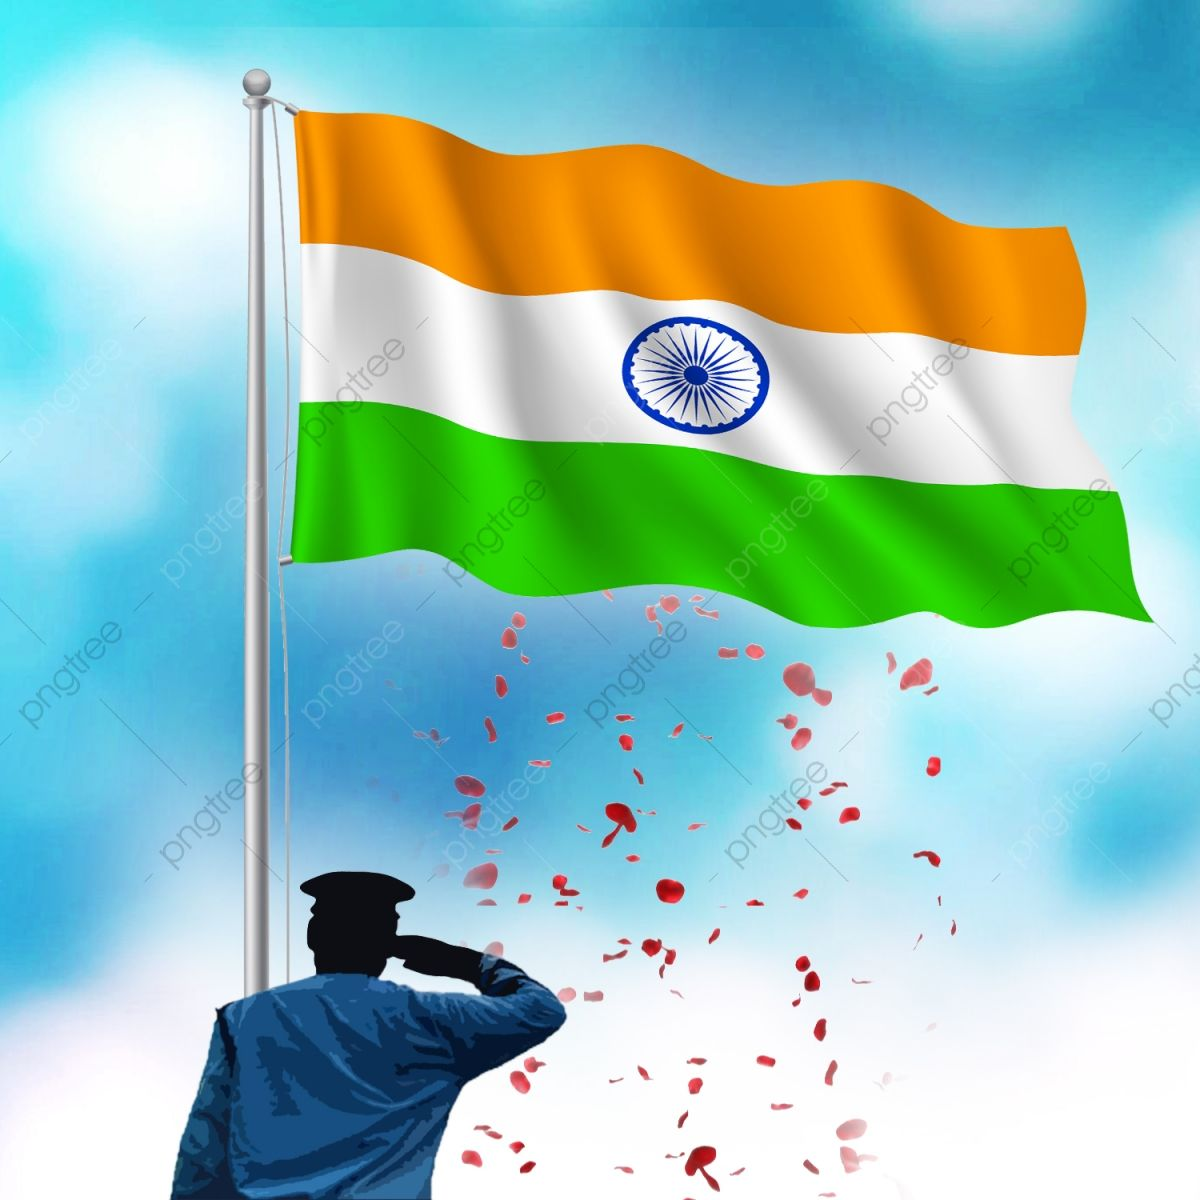 Download This Indian Flag Republic Day Independence Day Vector Png Clipart Image Happy Independence Day India Independence Day Images Independence Day India